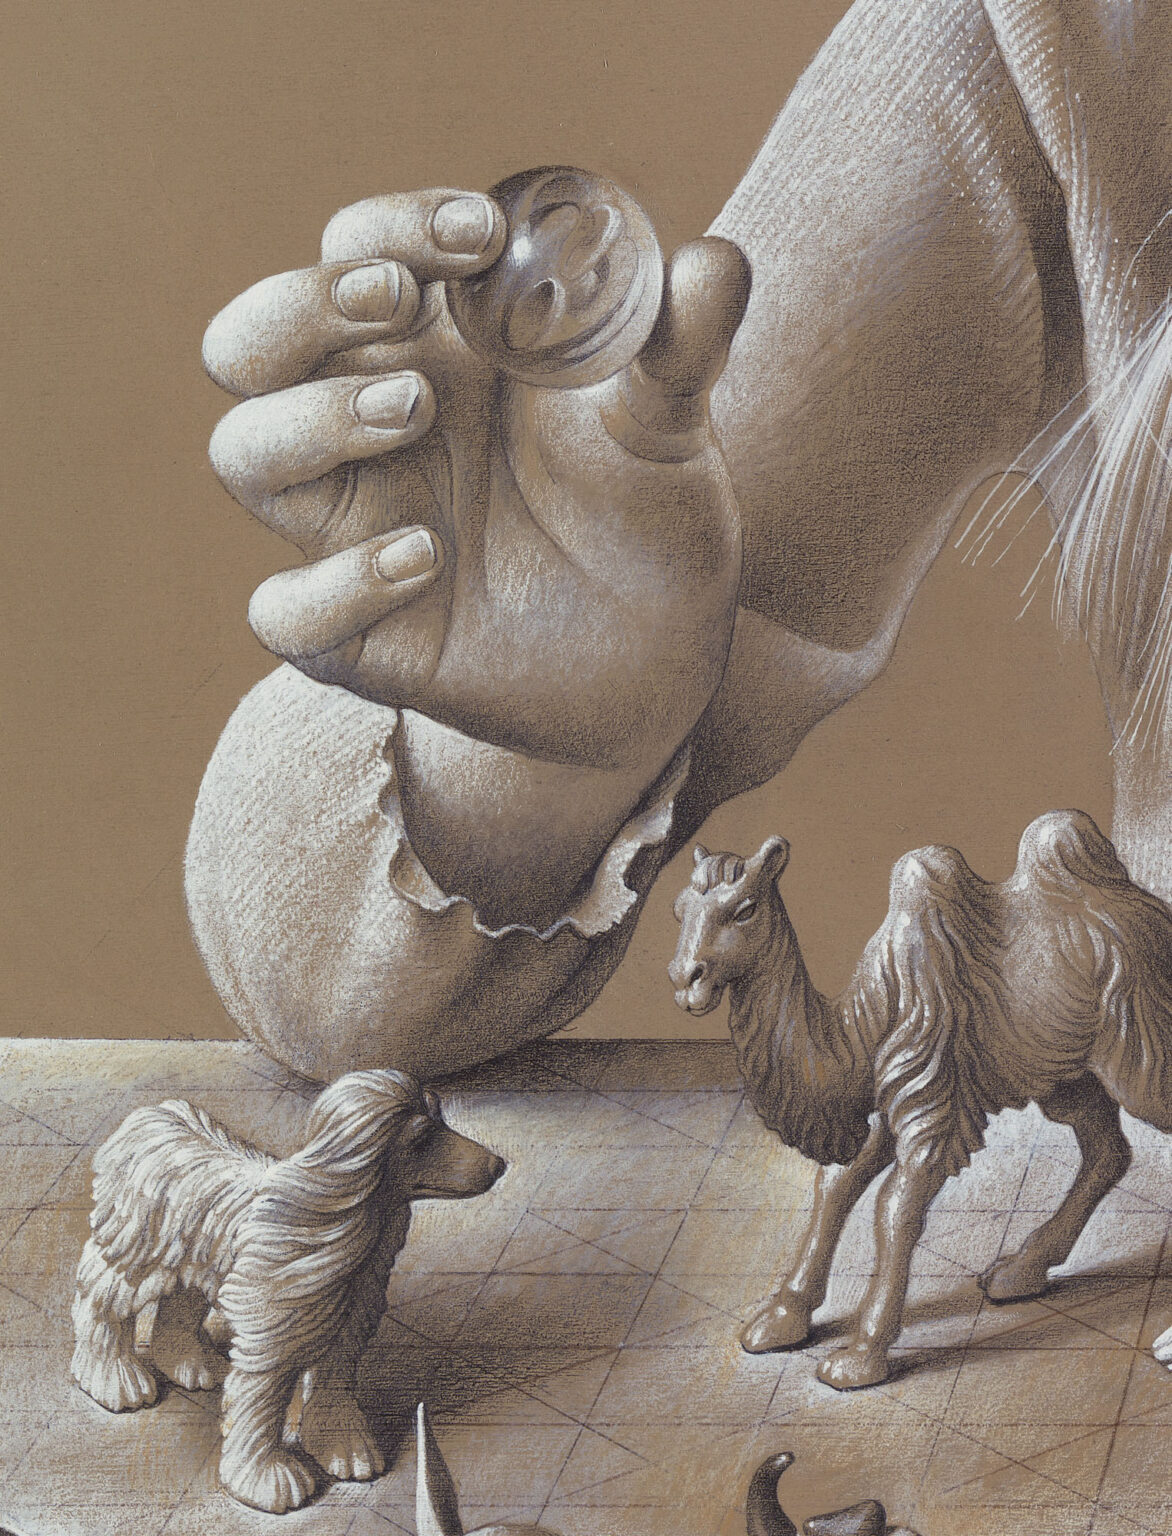 Childhood-Consecration-signed-limited-edition-print-detail 2-Miriam-Escofet